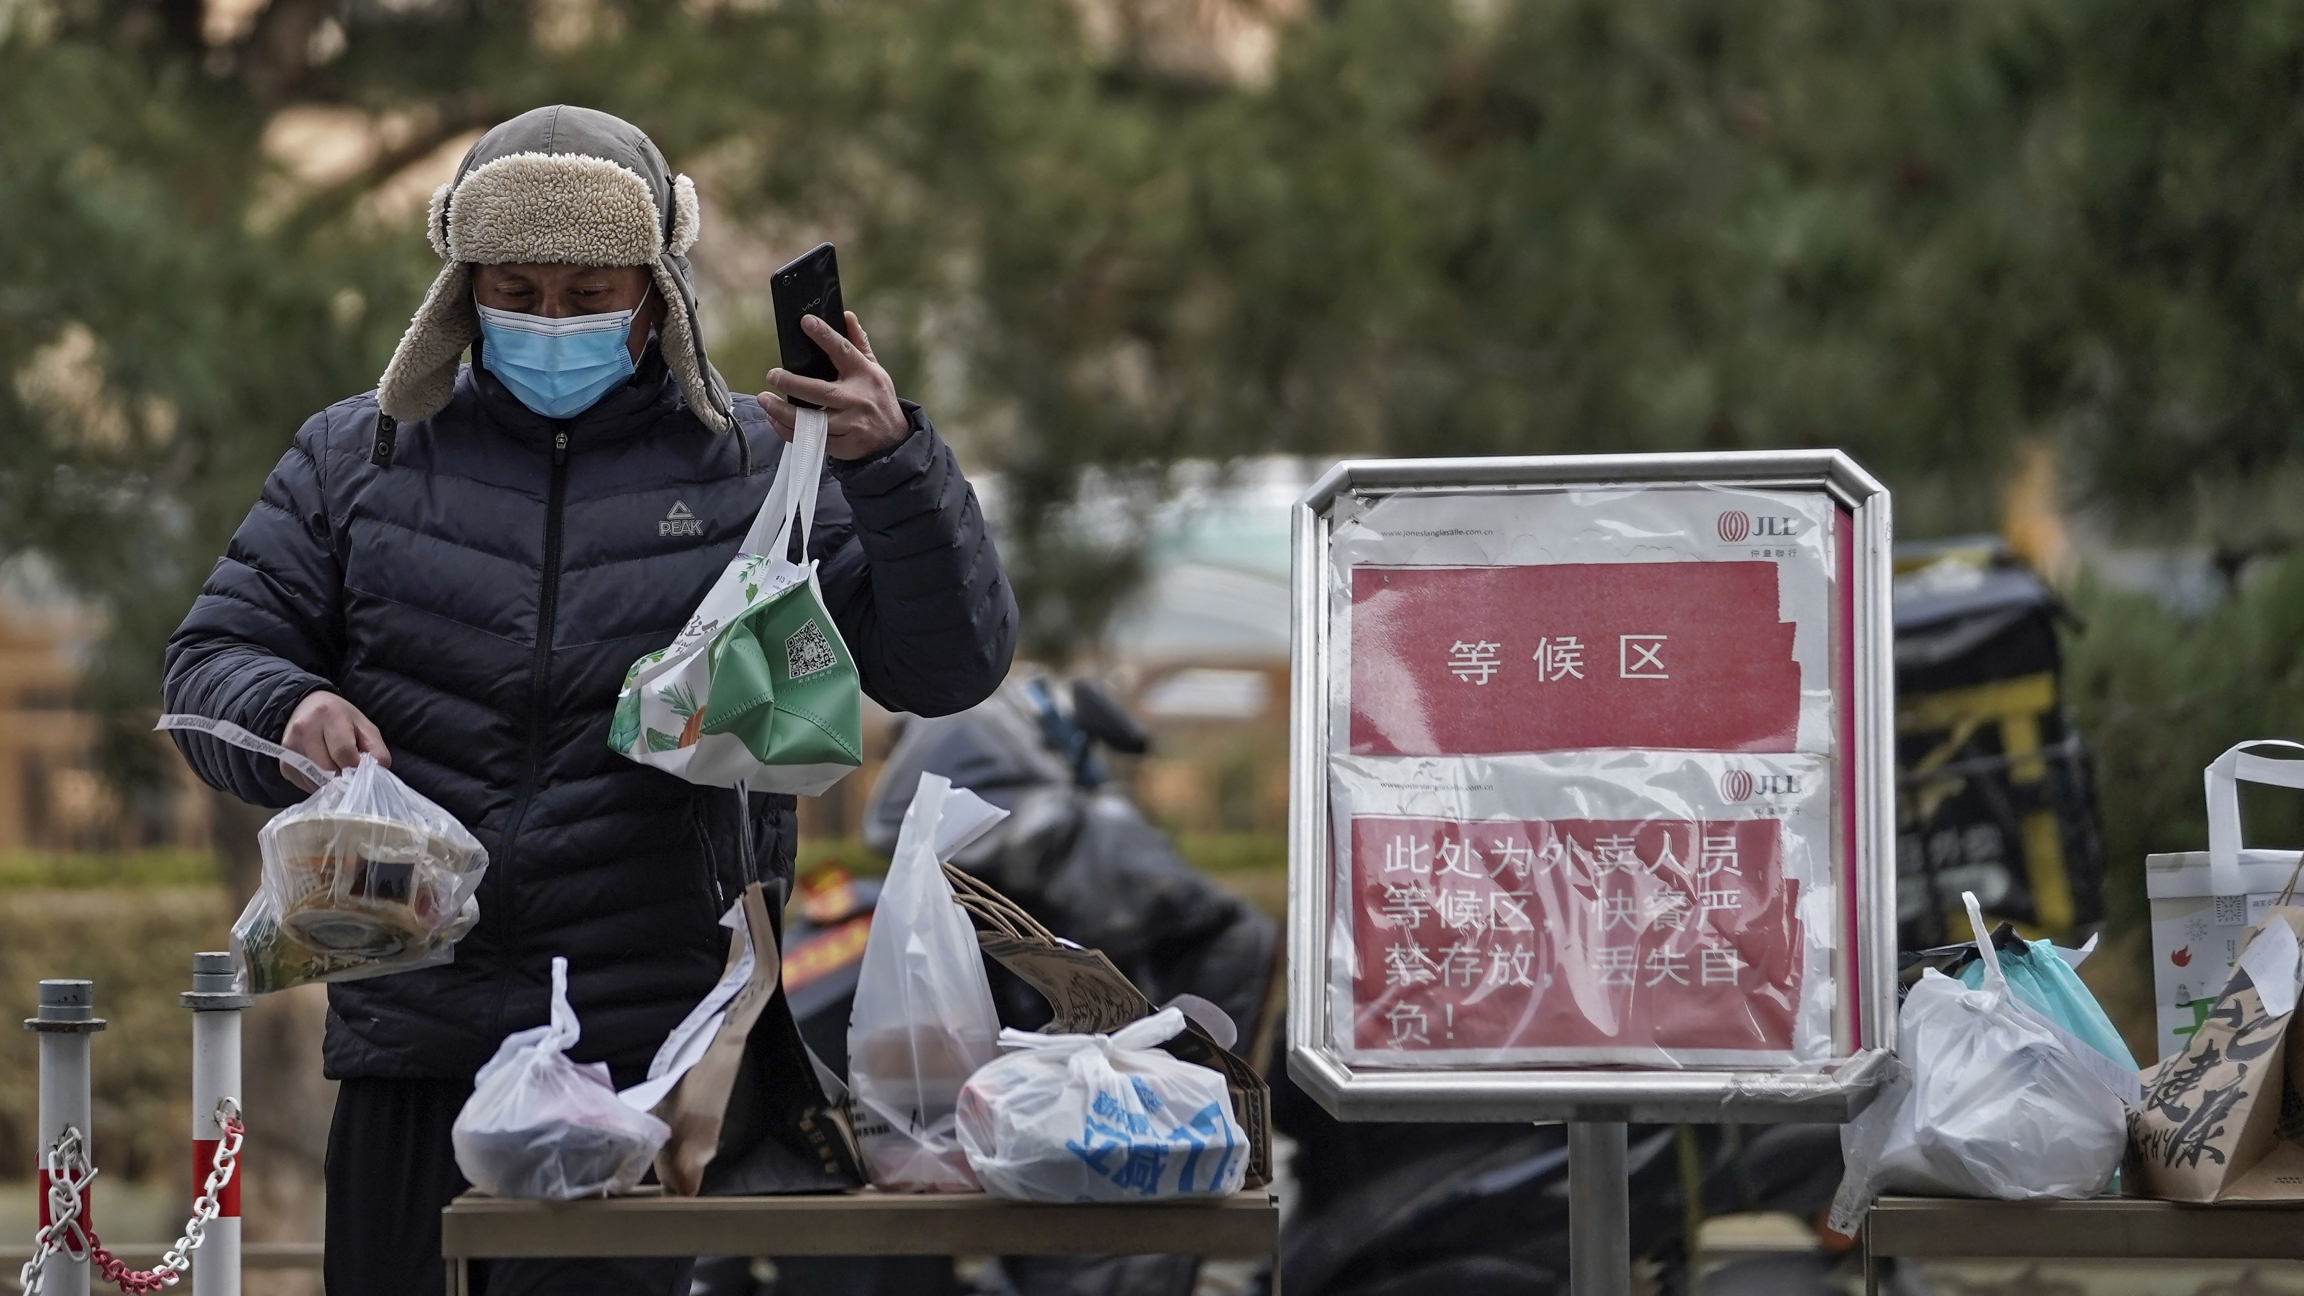 A delivery driver wearing a mask organizes food packages outside.